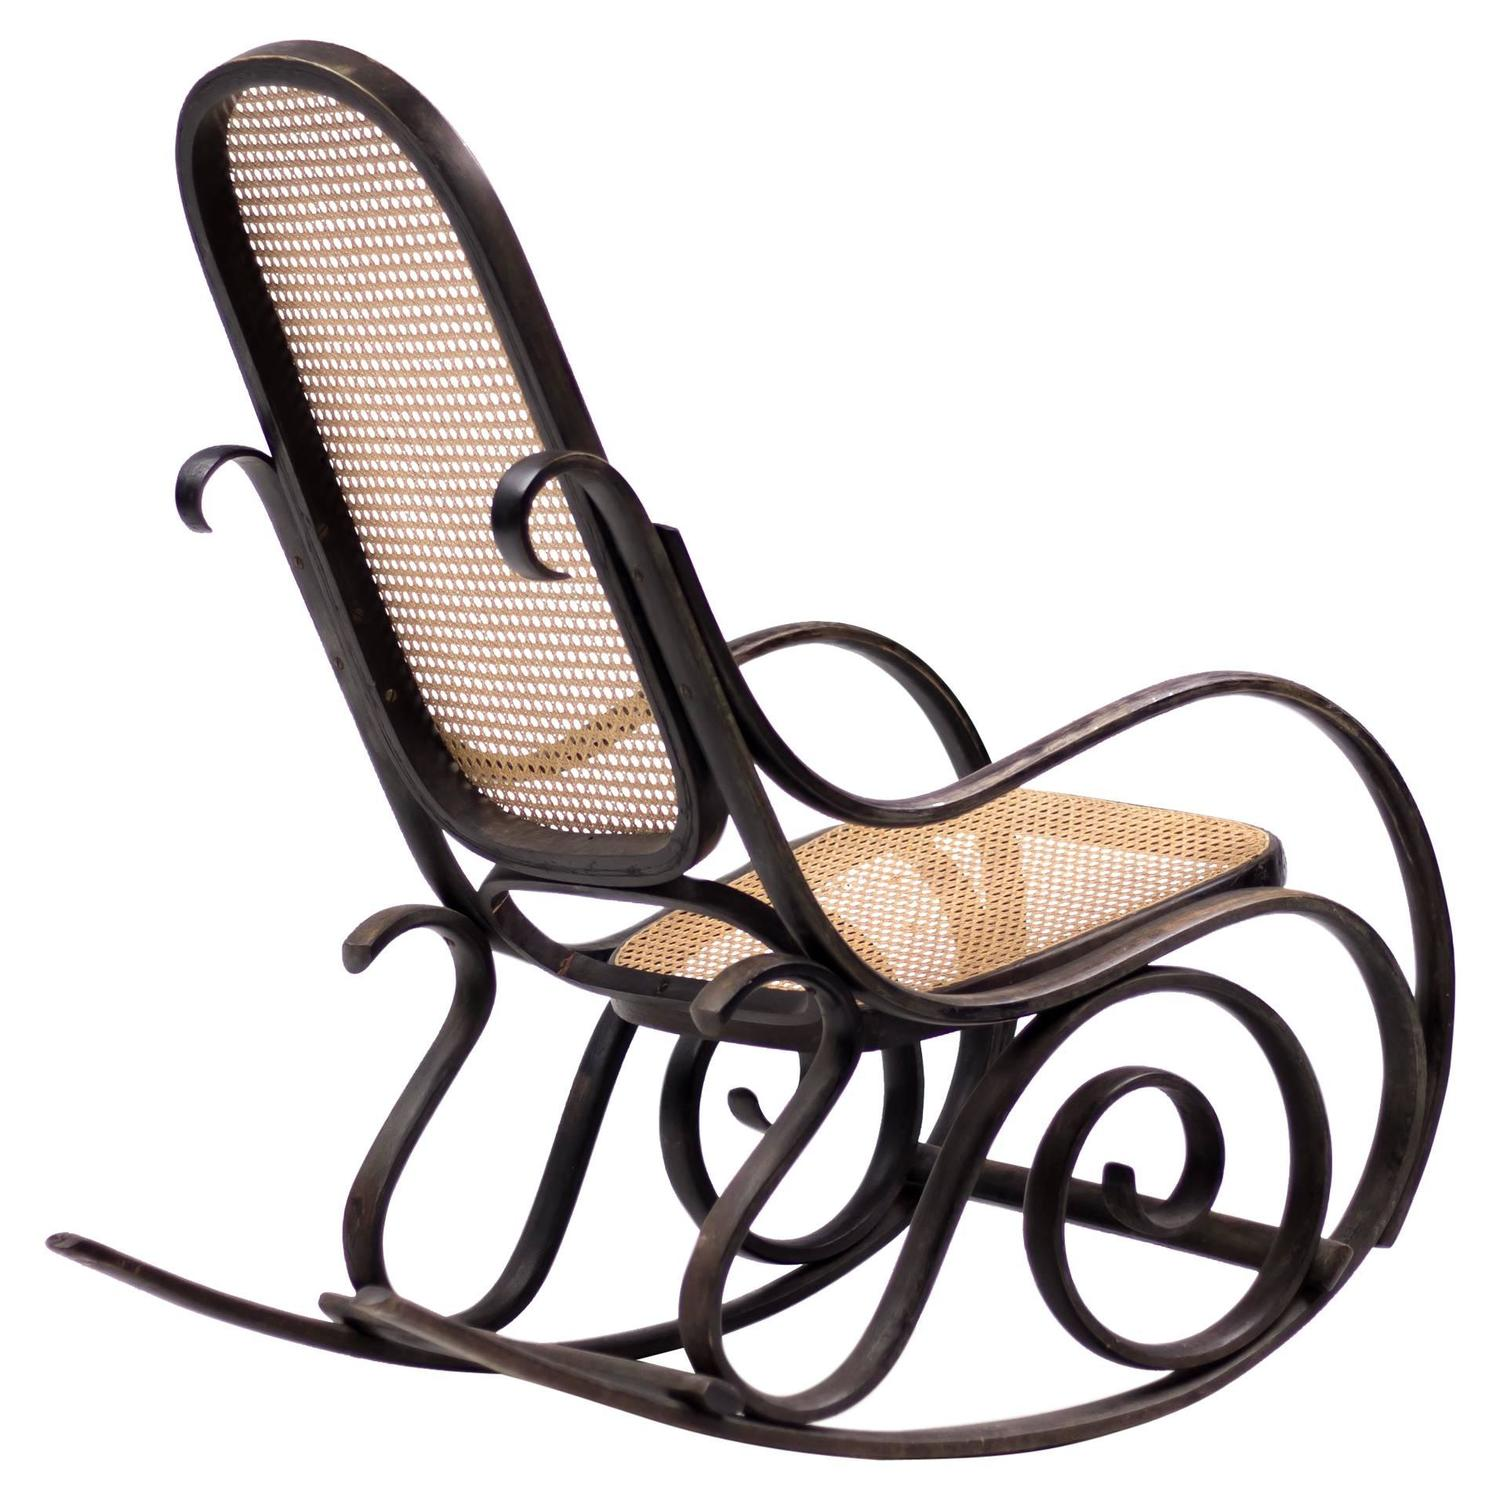 Antique Thonet Model Bentwood Rocking Chair Salvatore Leone - Antique bentwood rocker rocking chair